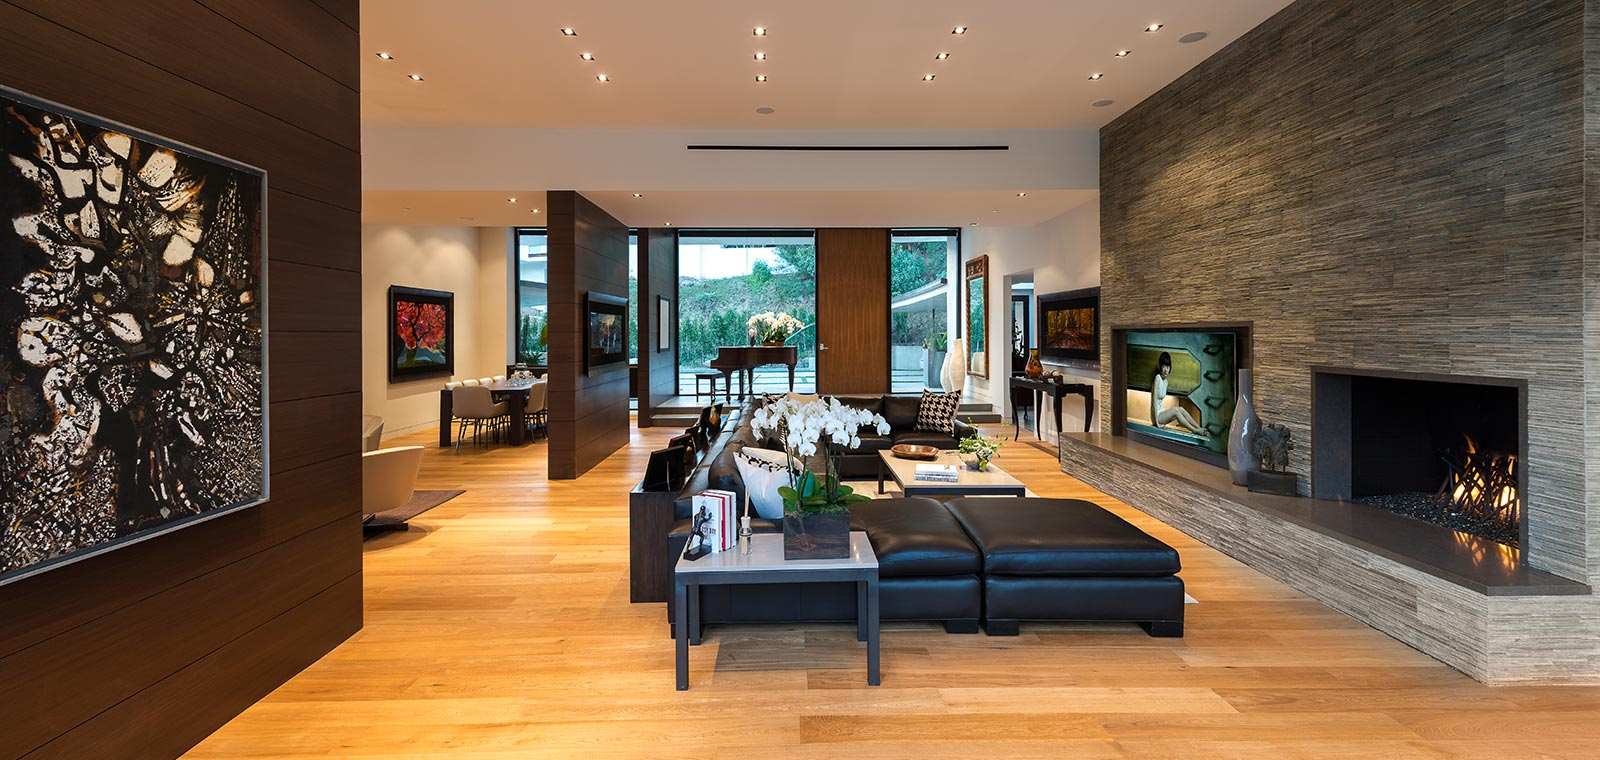 Wallace Ridge by Whipple Russell Architects - Stunning Living Room